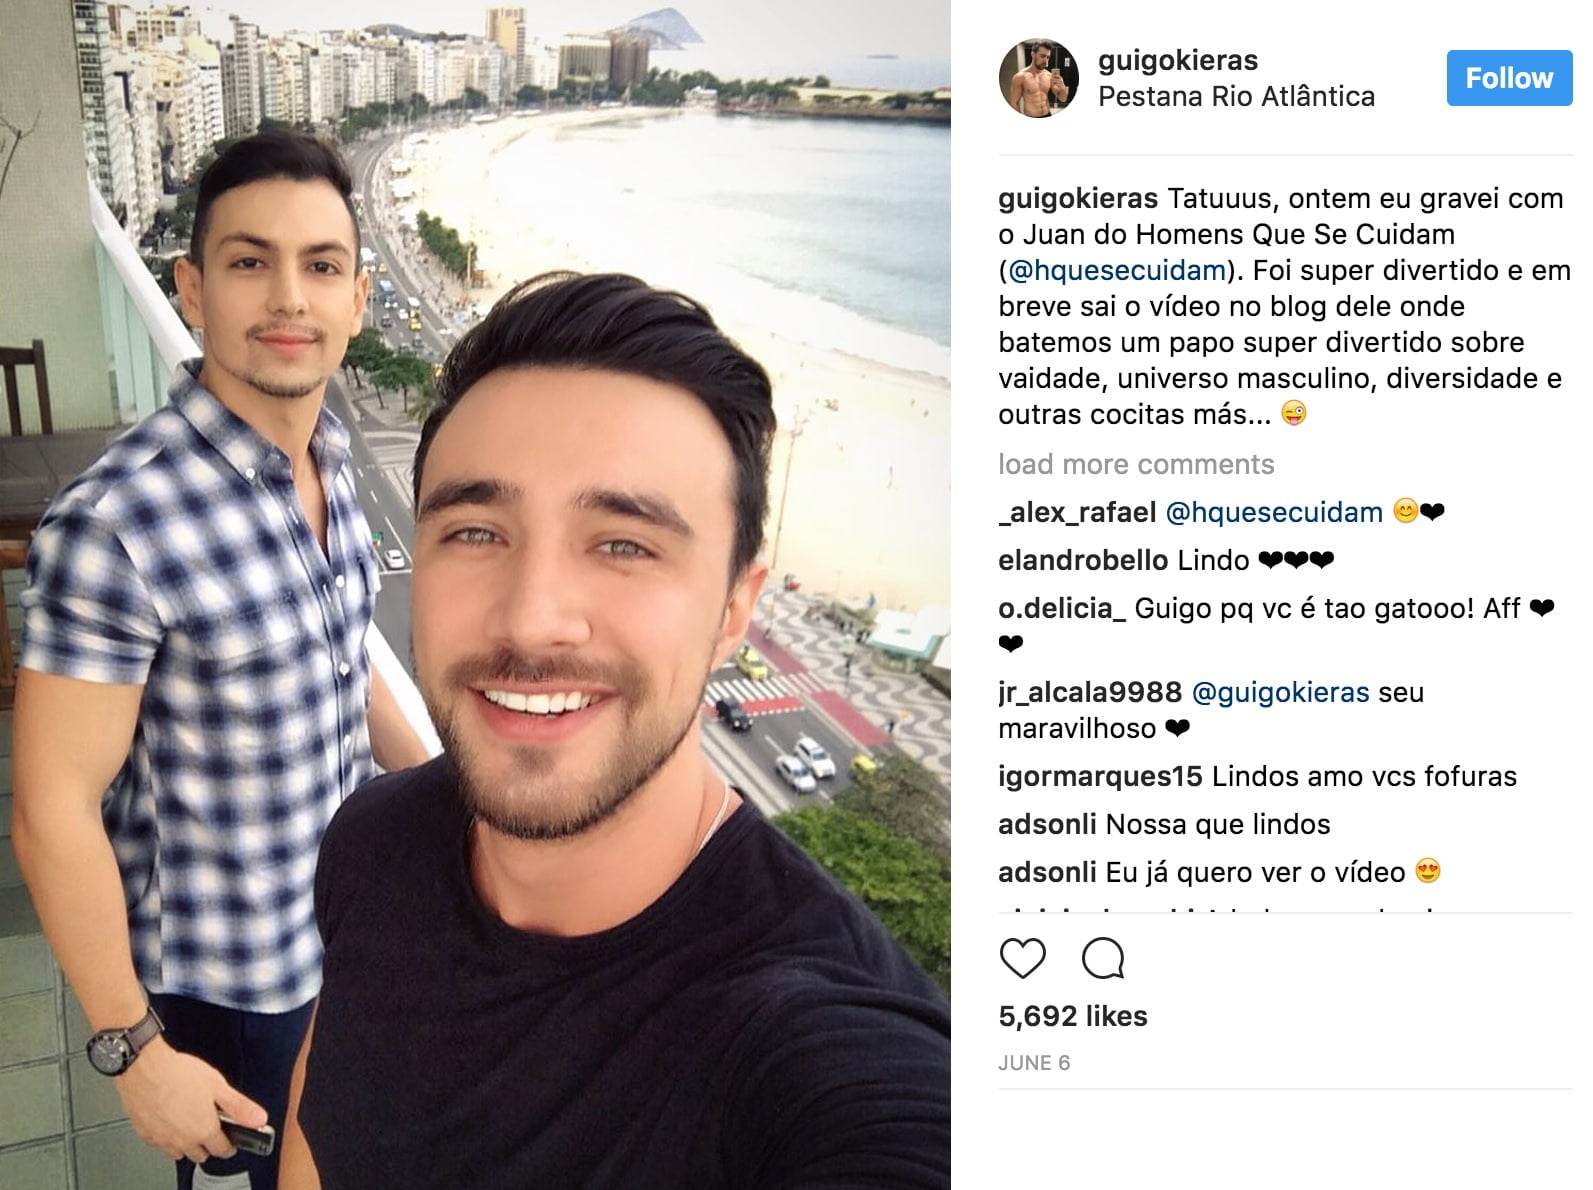 juan alves do homens que se cuidam e guigo kieras do fora da casinha barbeia e fala